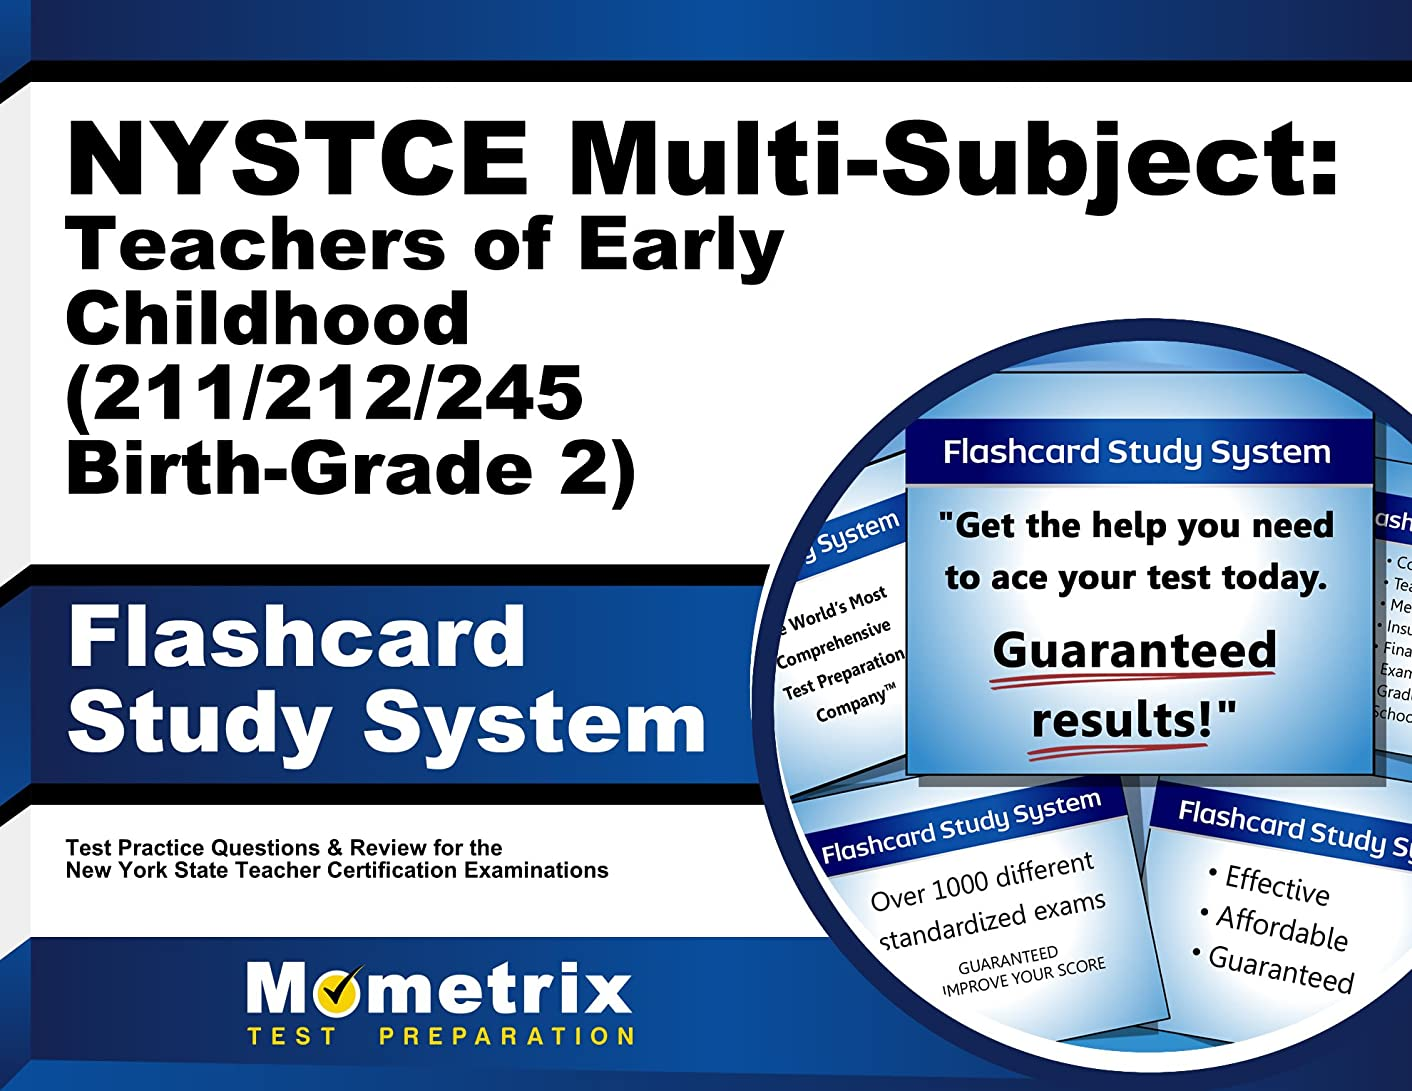 NYSTCE Multi-Subject: Teachers of Early Childhood (211/212/245 Birth-Grade 2) Flashcard Study System: NYSTCE Test Practice Questions & Exam Review for ... Teacher Certification Examinations (Cards)